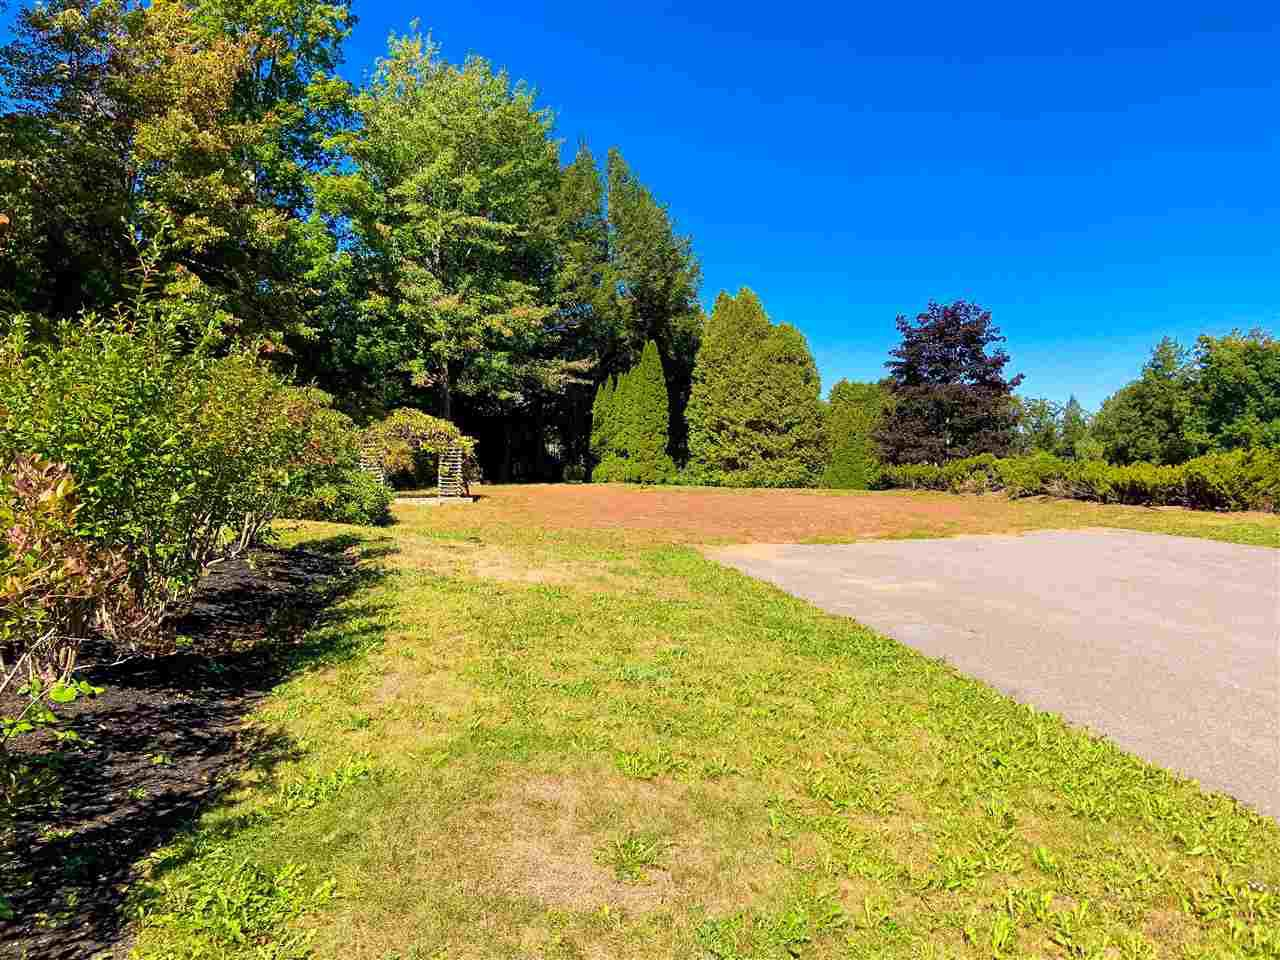 Main Photo: 57 MacDonald Park Road in Kentville: 404-Kings County Vacant Land for sale (Annapolis Valley)  : MLS®# 202019615